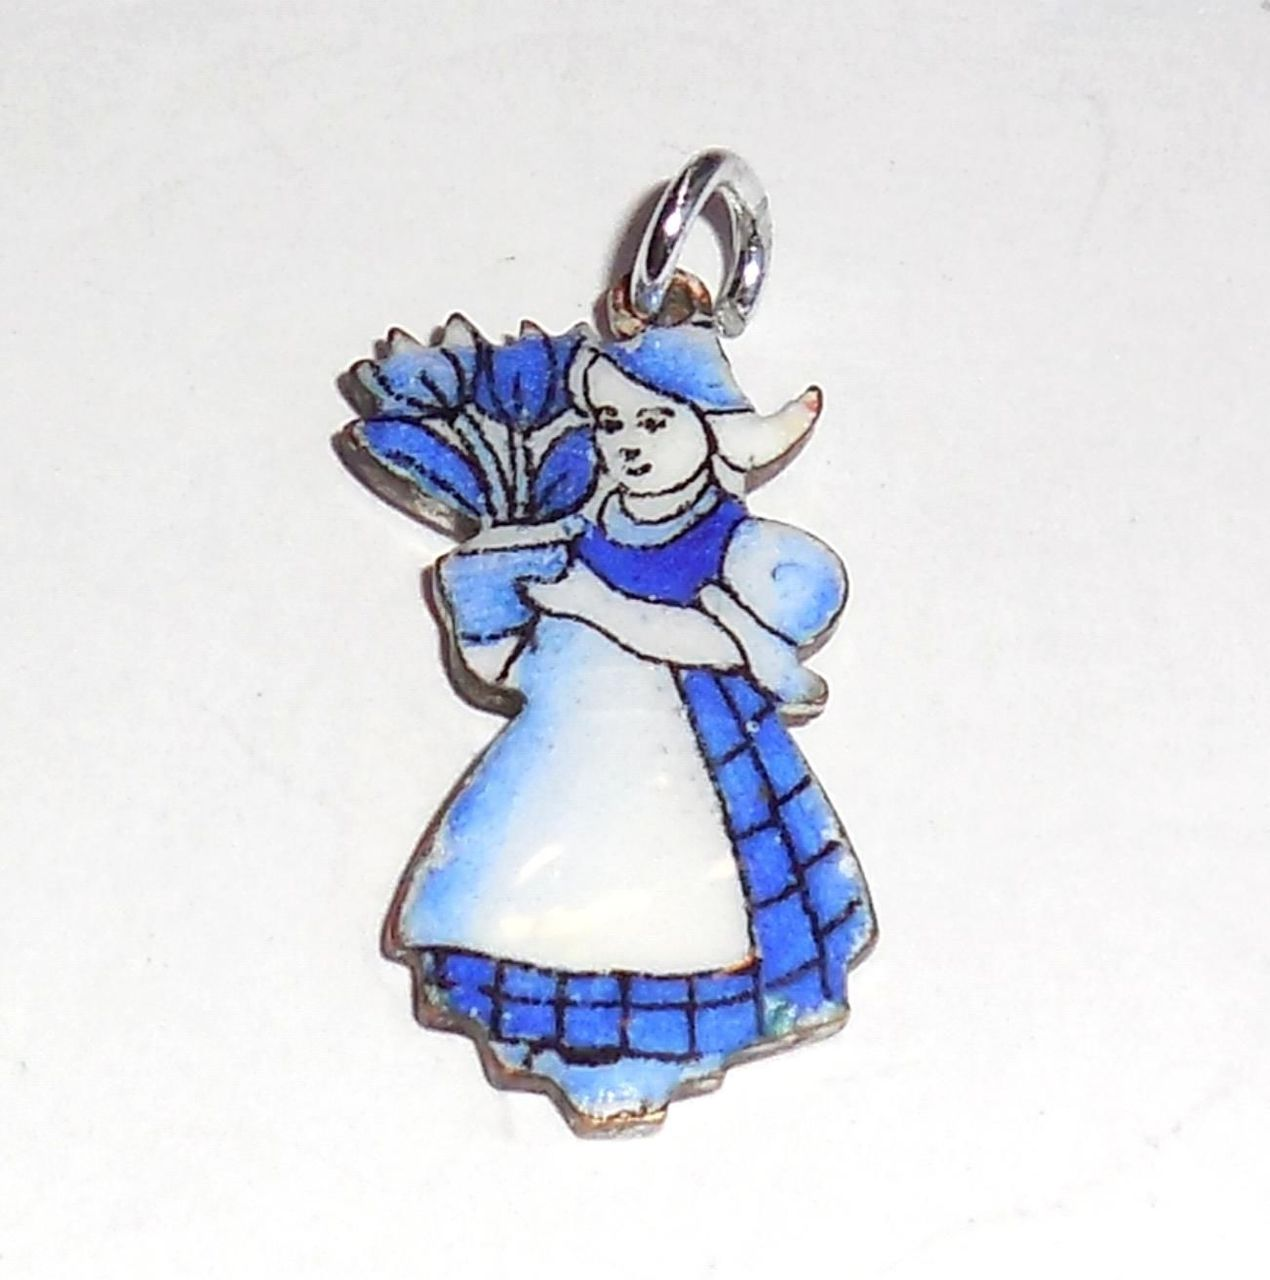 Small Vintage Hand Painted Enameled Netherlands Dutch Girl Pendant Charm